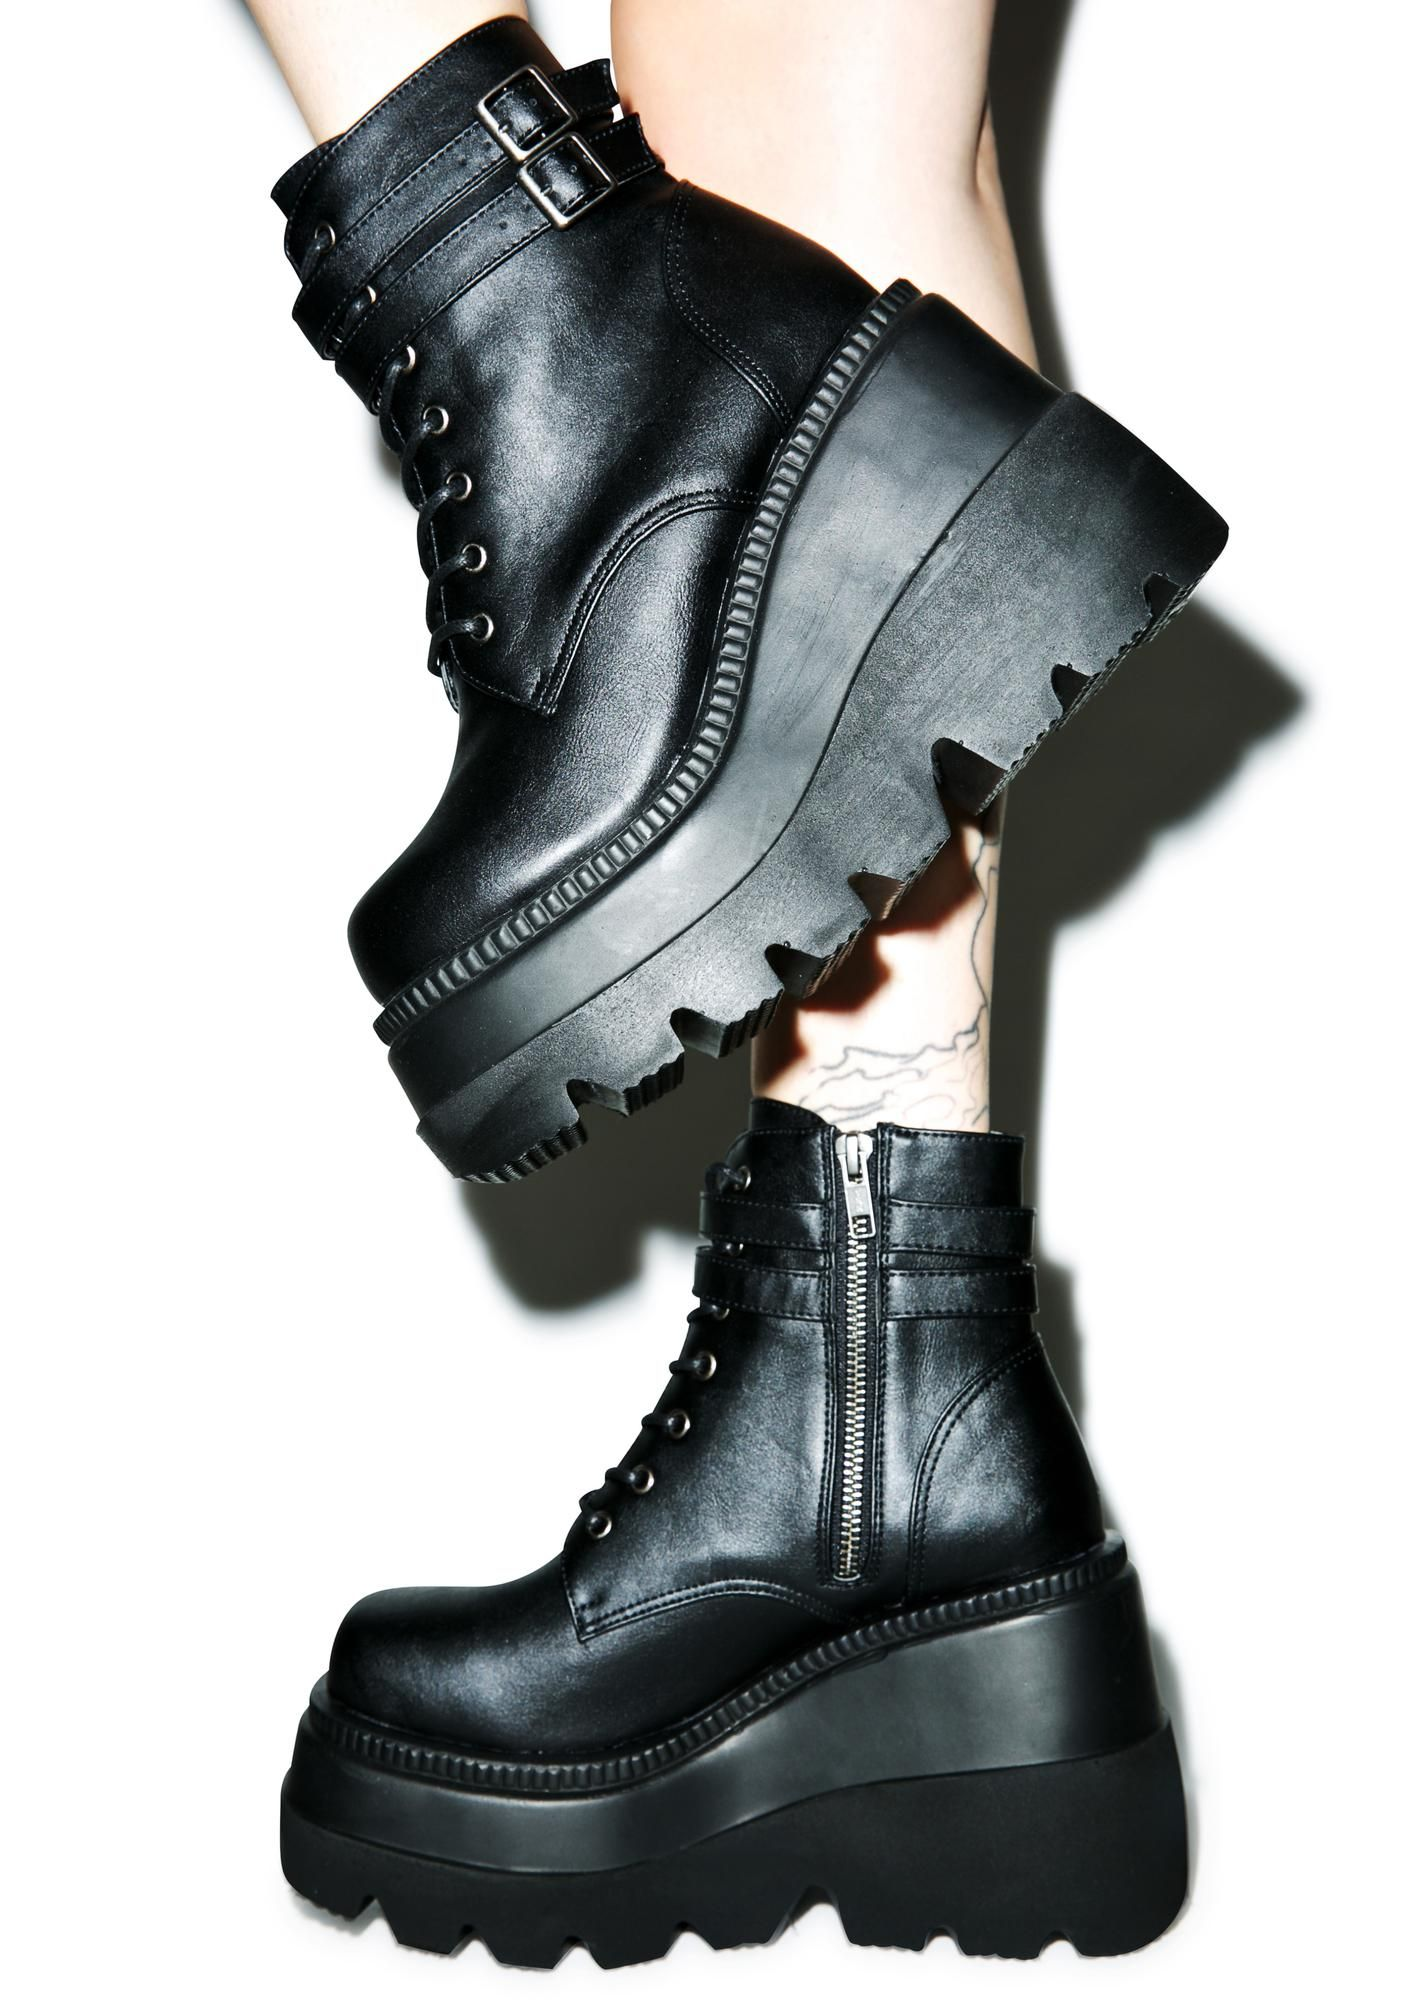 b654eb2ec75d Technopagan Boots in 2019